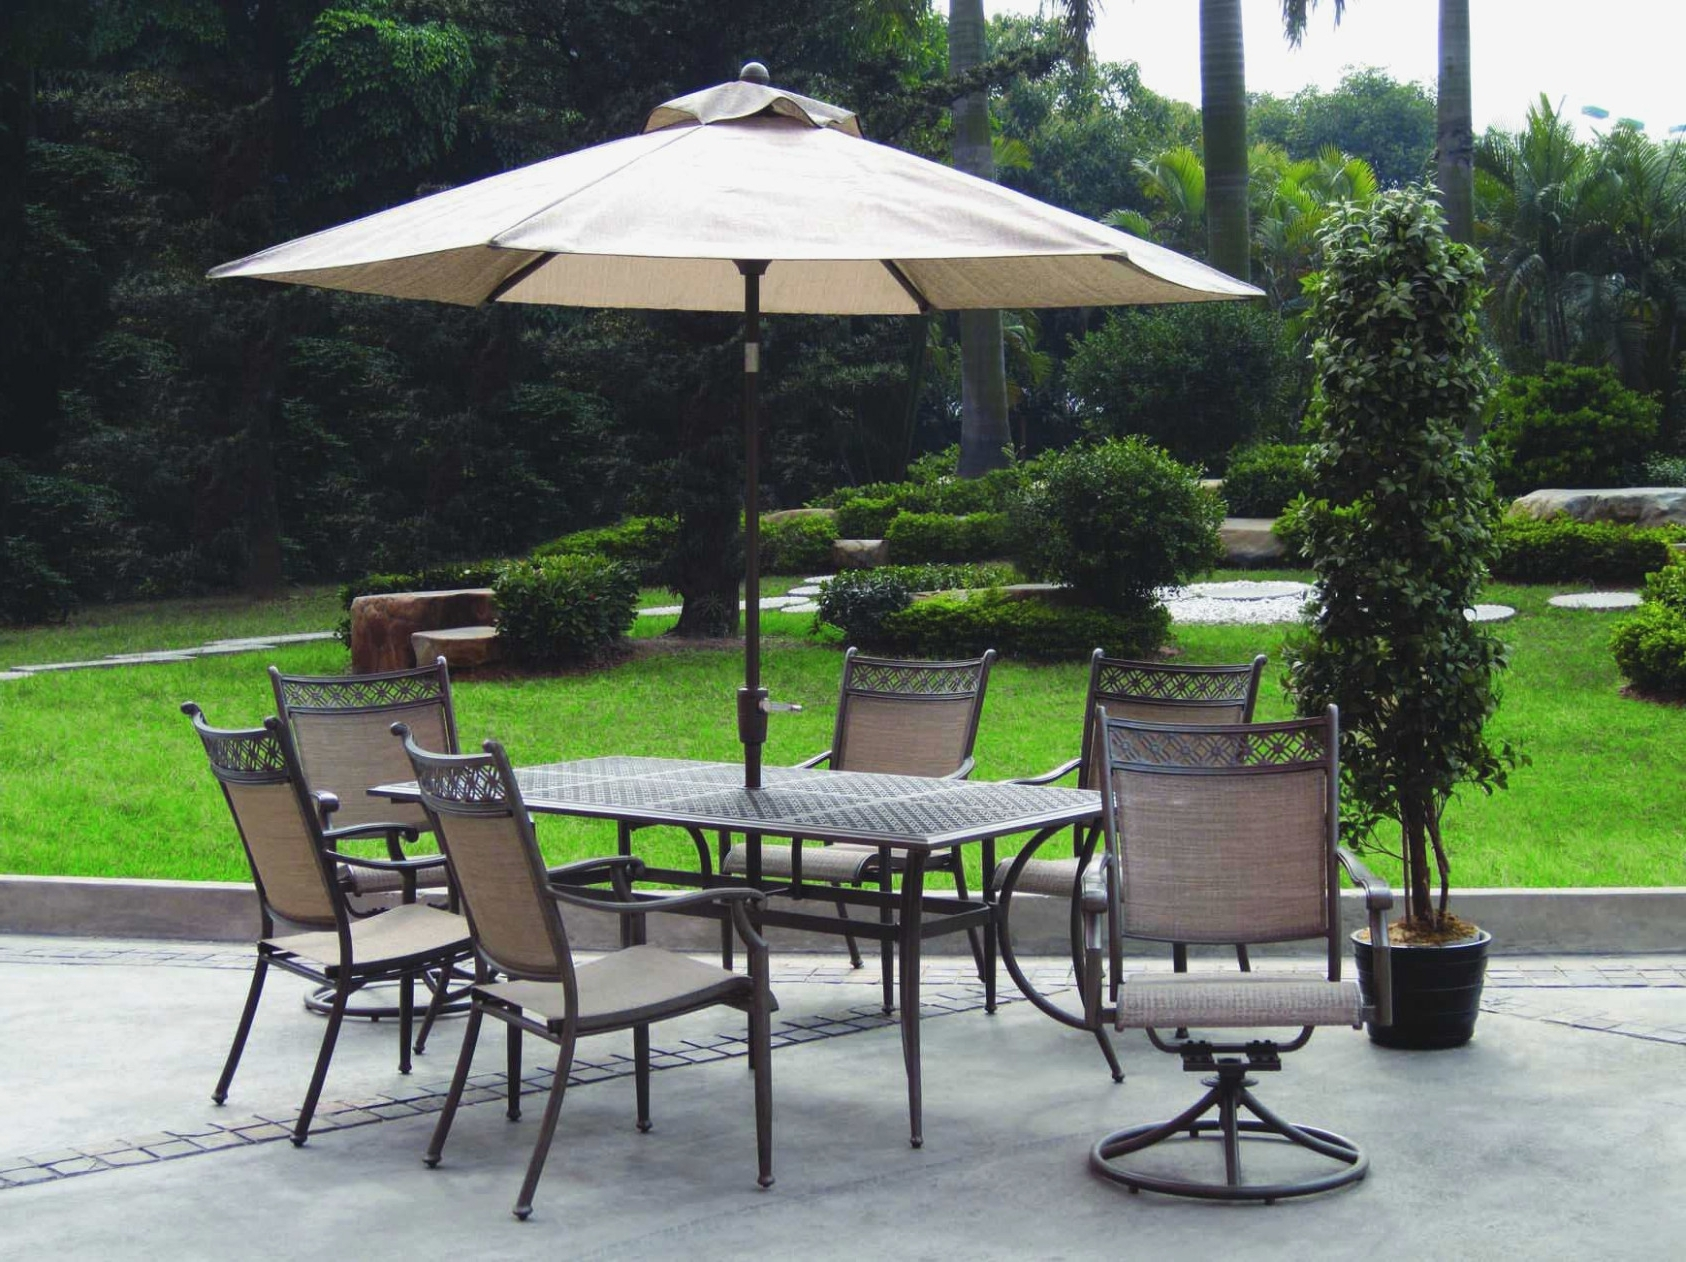 Fashionable Enchanting Cheap Patio Umbrellas With Furniture Alluring Collection With Regard To Cheap Patio Umbrellas (View 7 of 20)